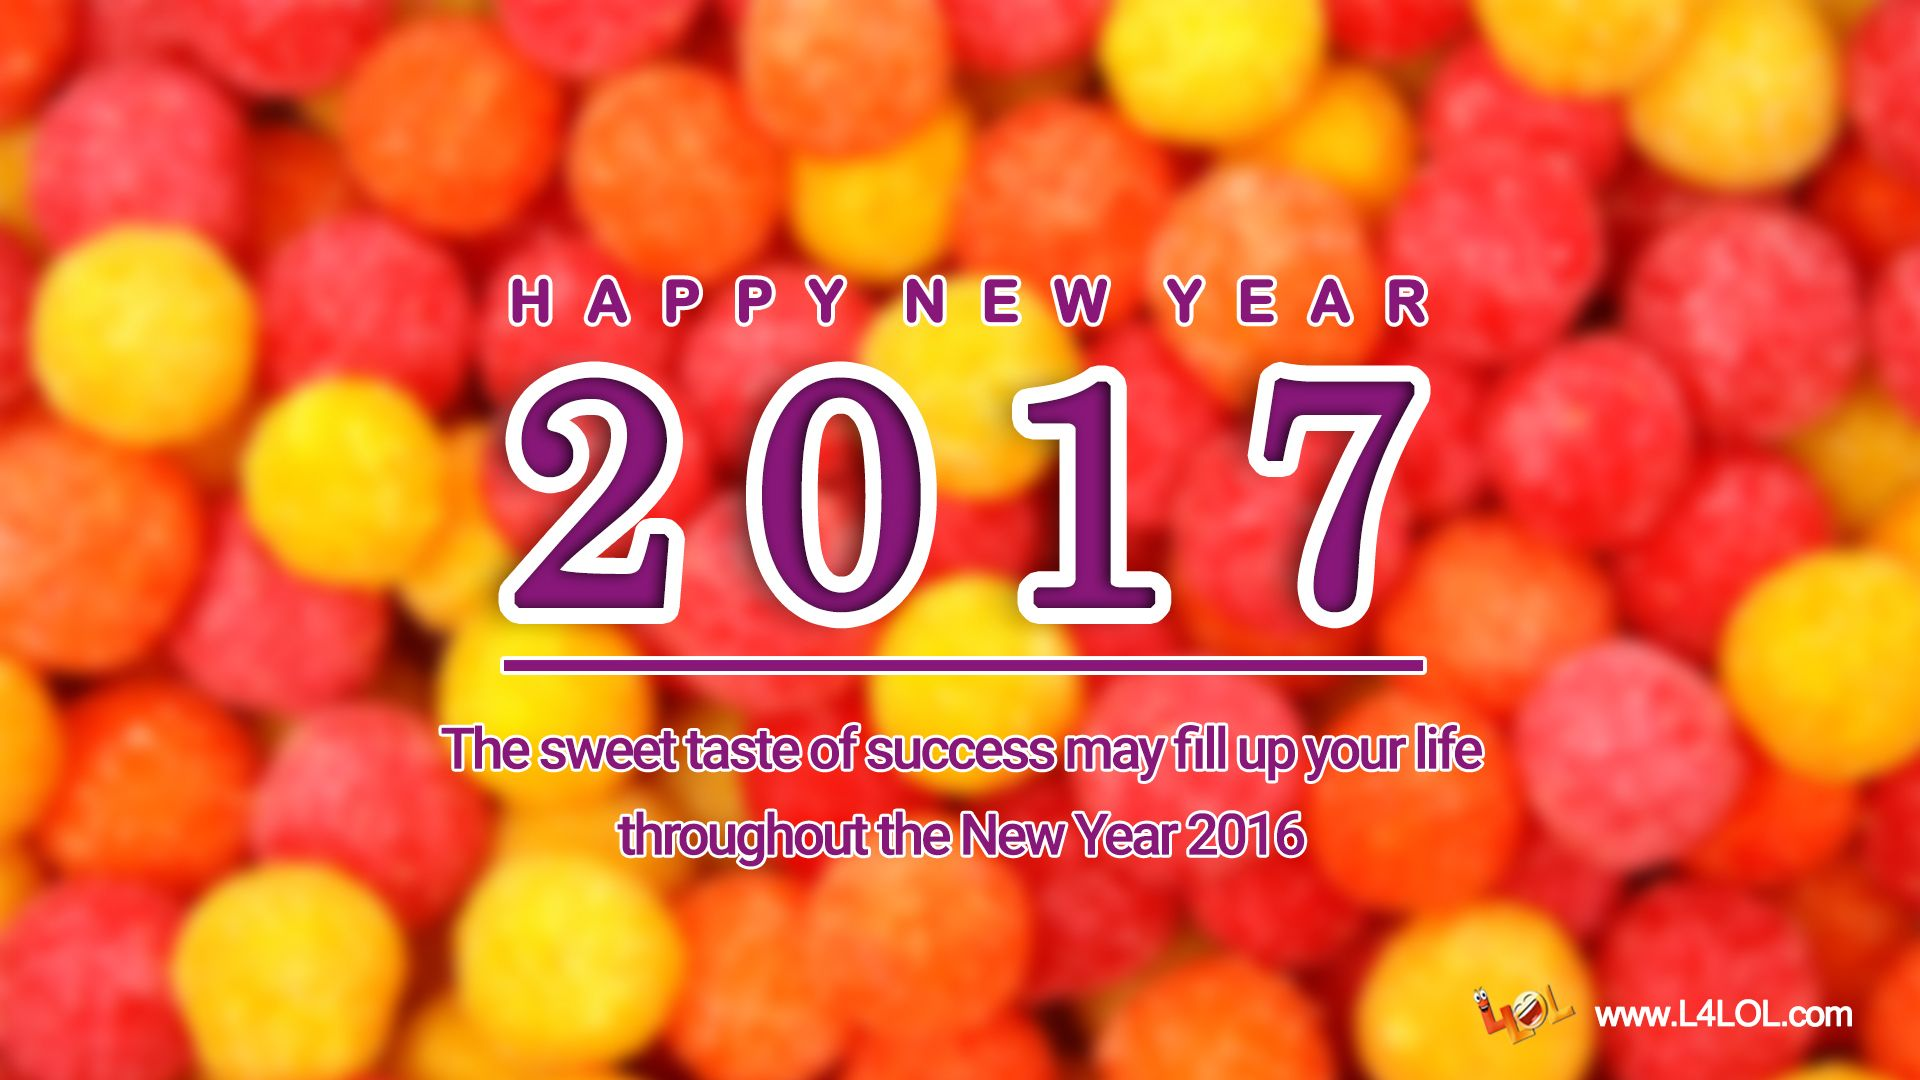 Happynewyear2017 Happy New Year 2017 Greetings Sms And Wishes For